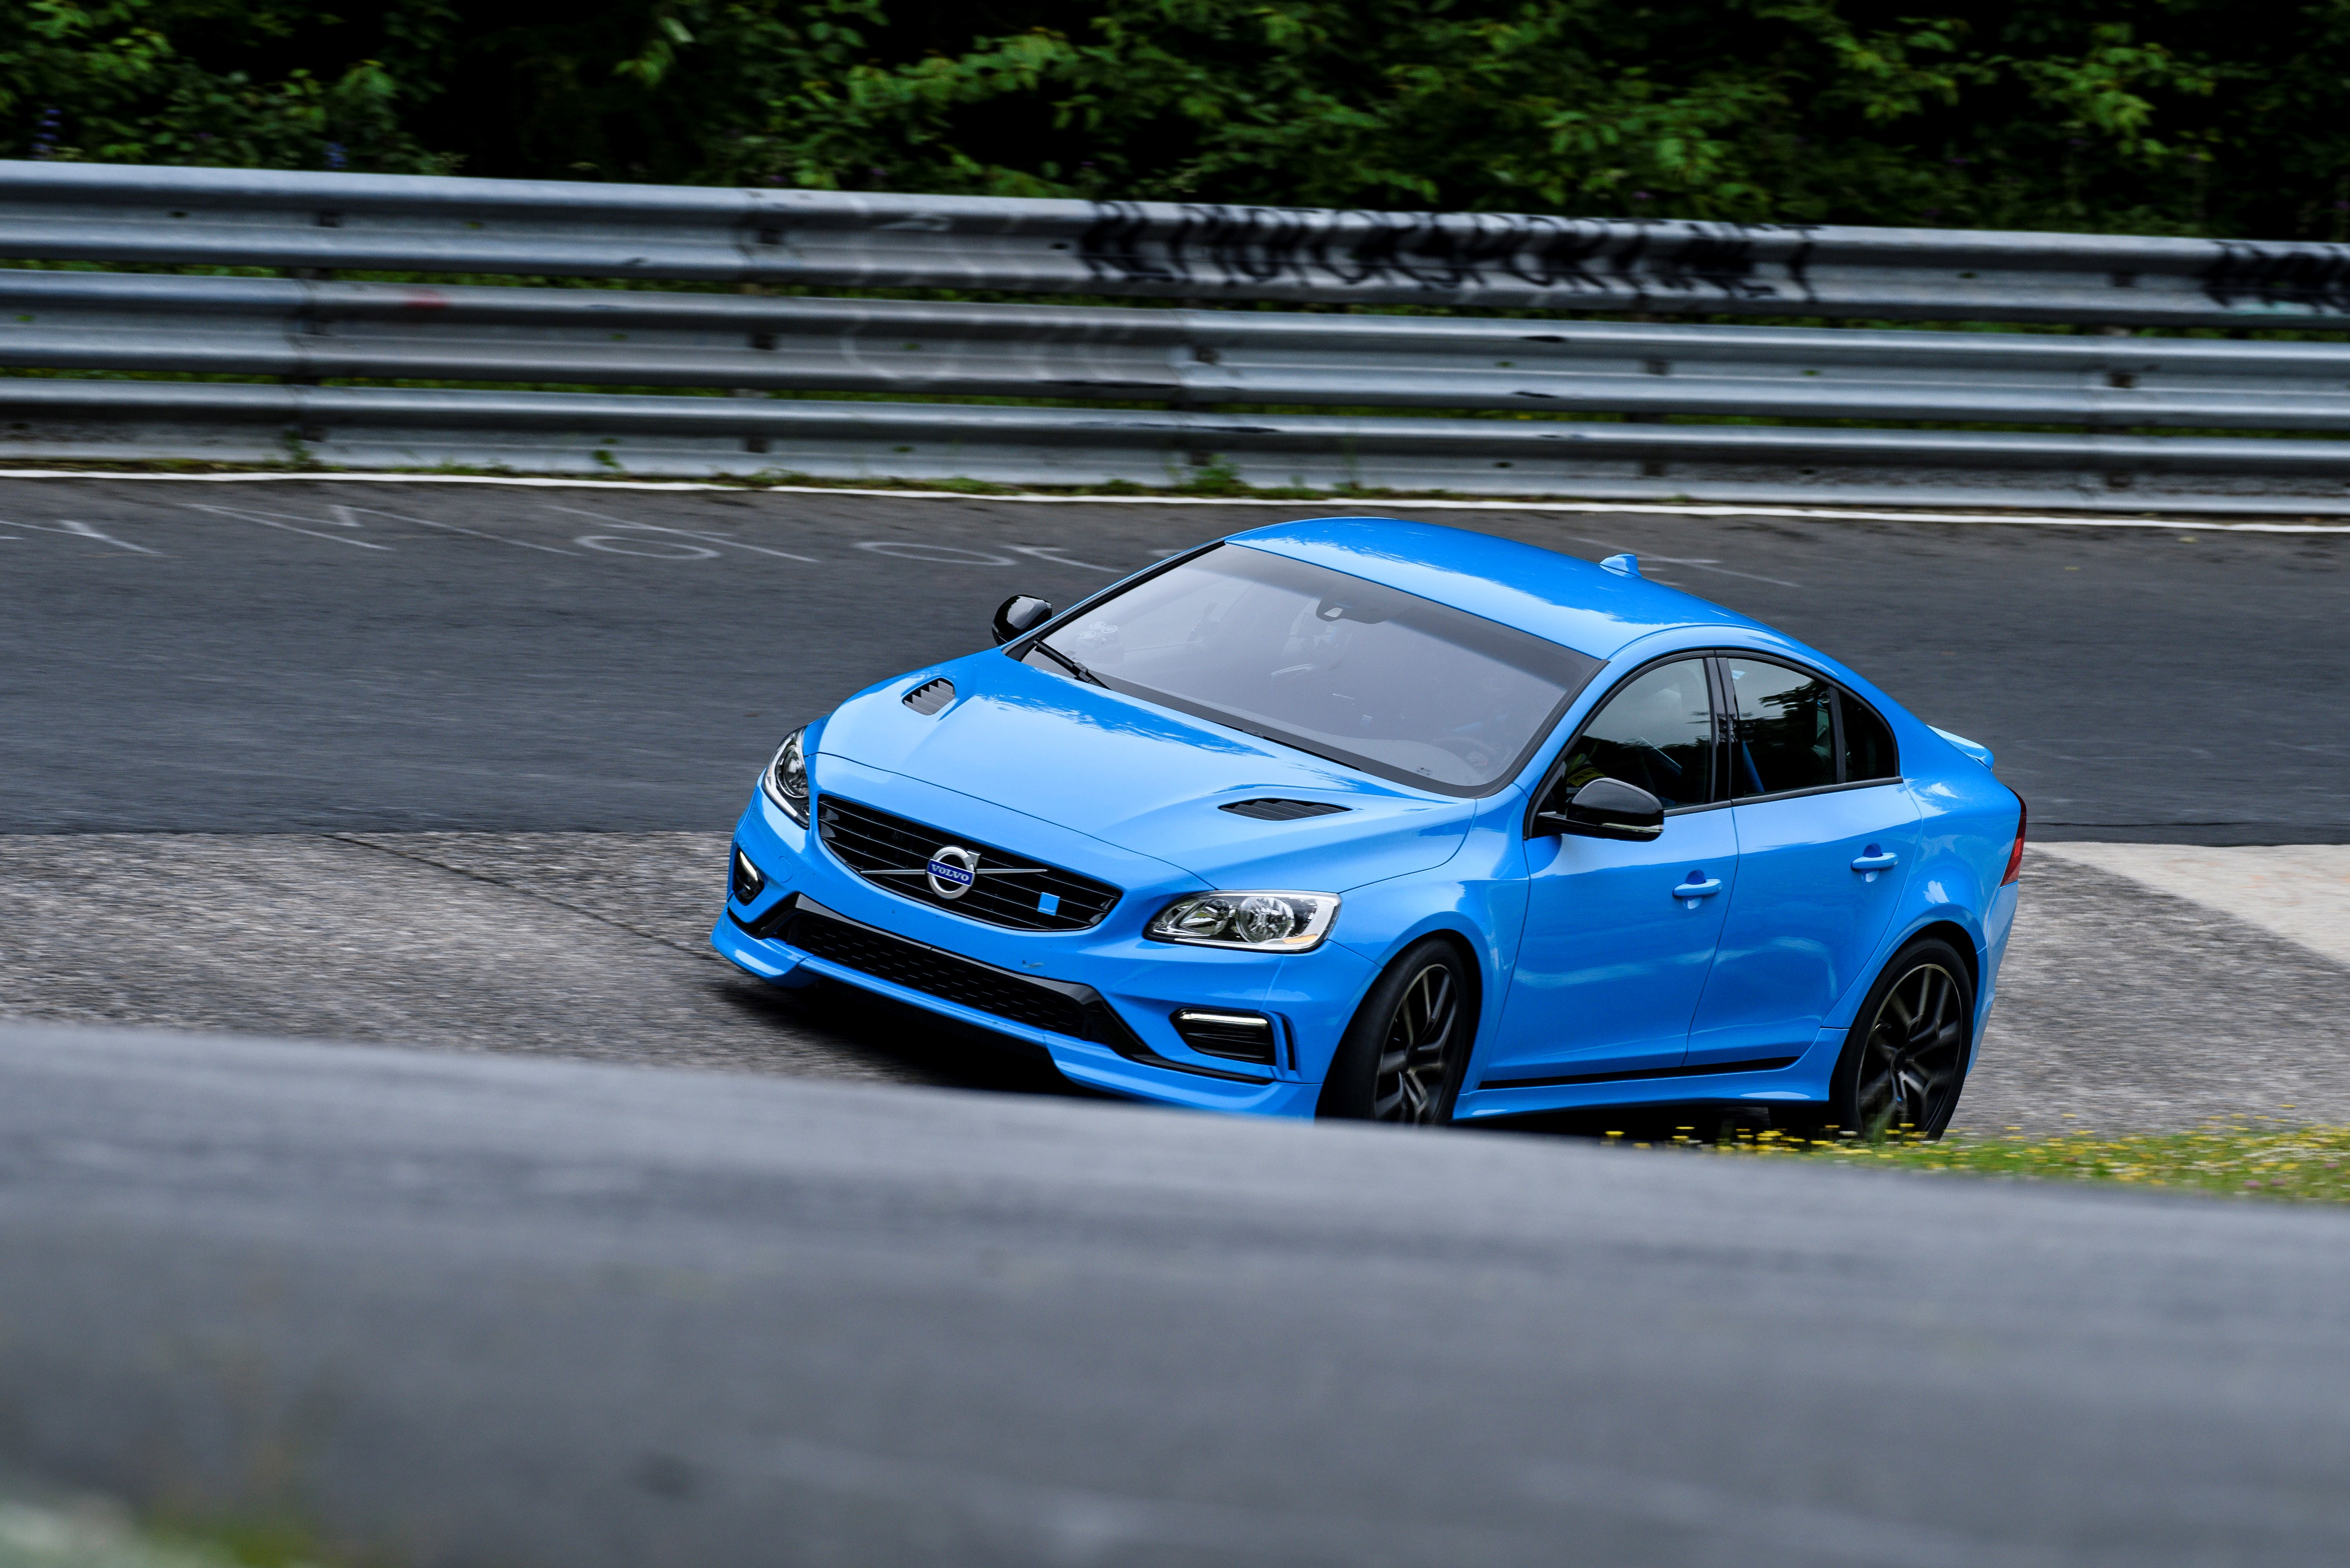 limited auto volvo edition polestar canadian reviews review